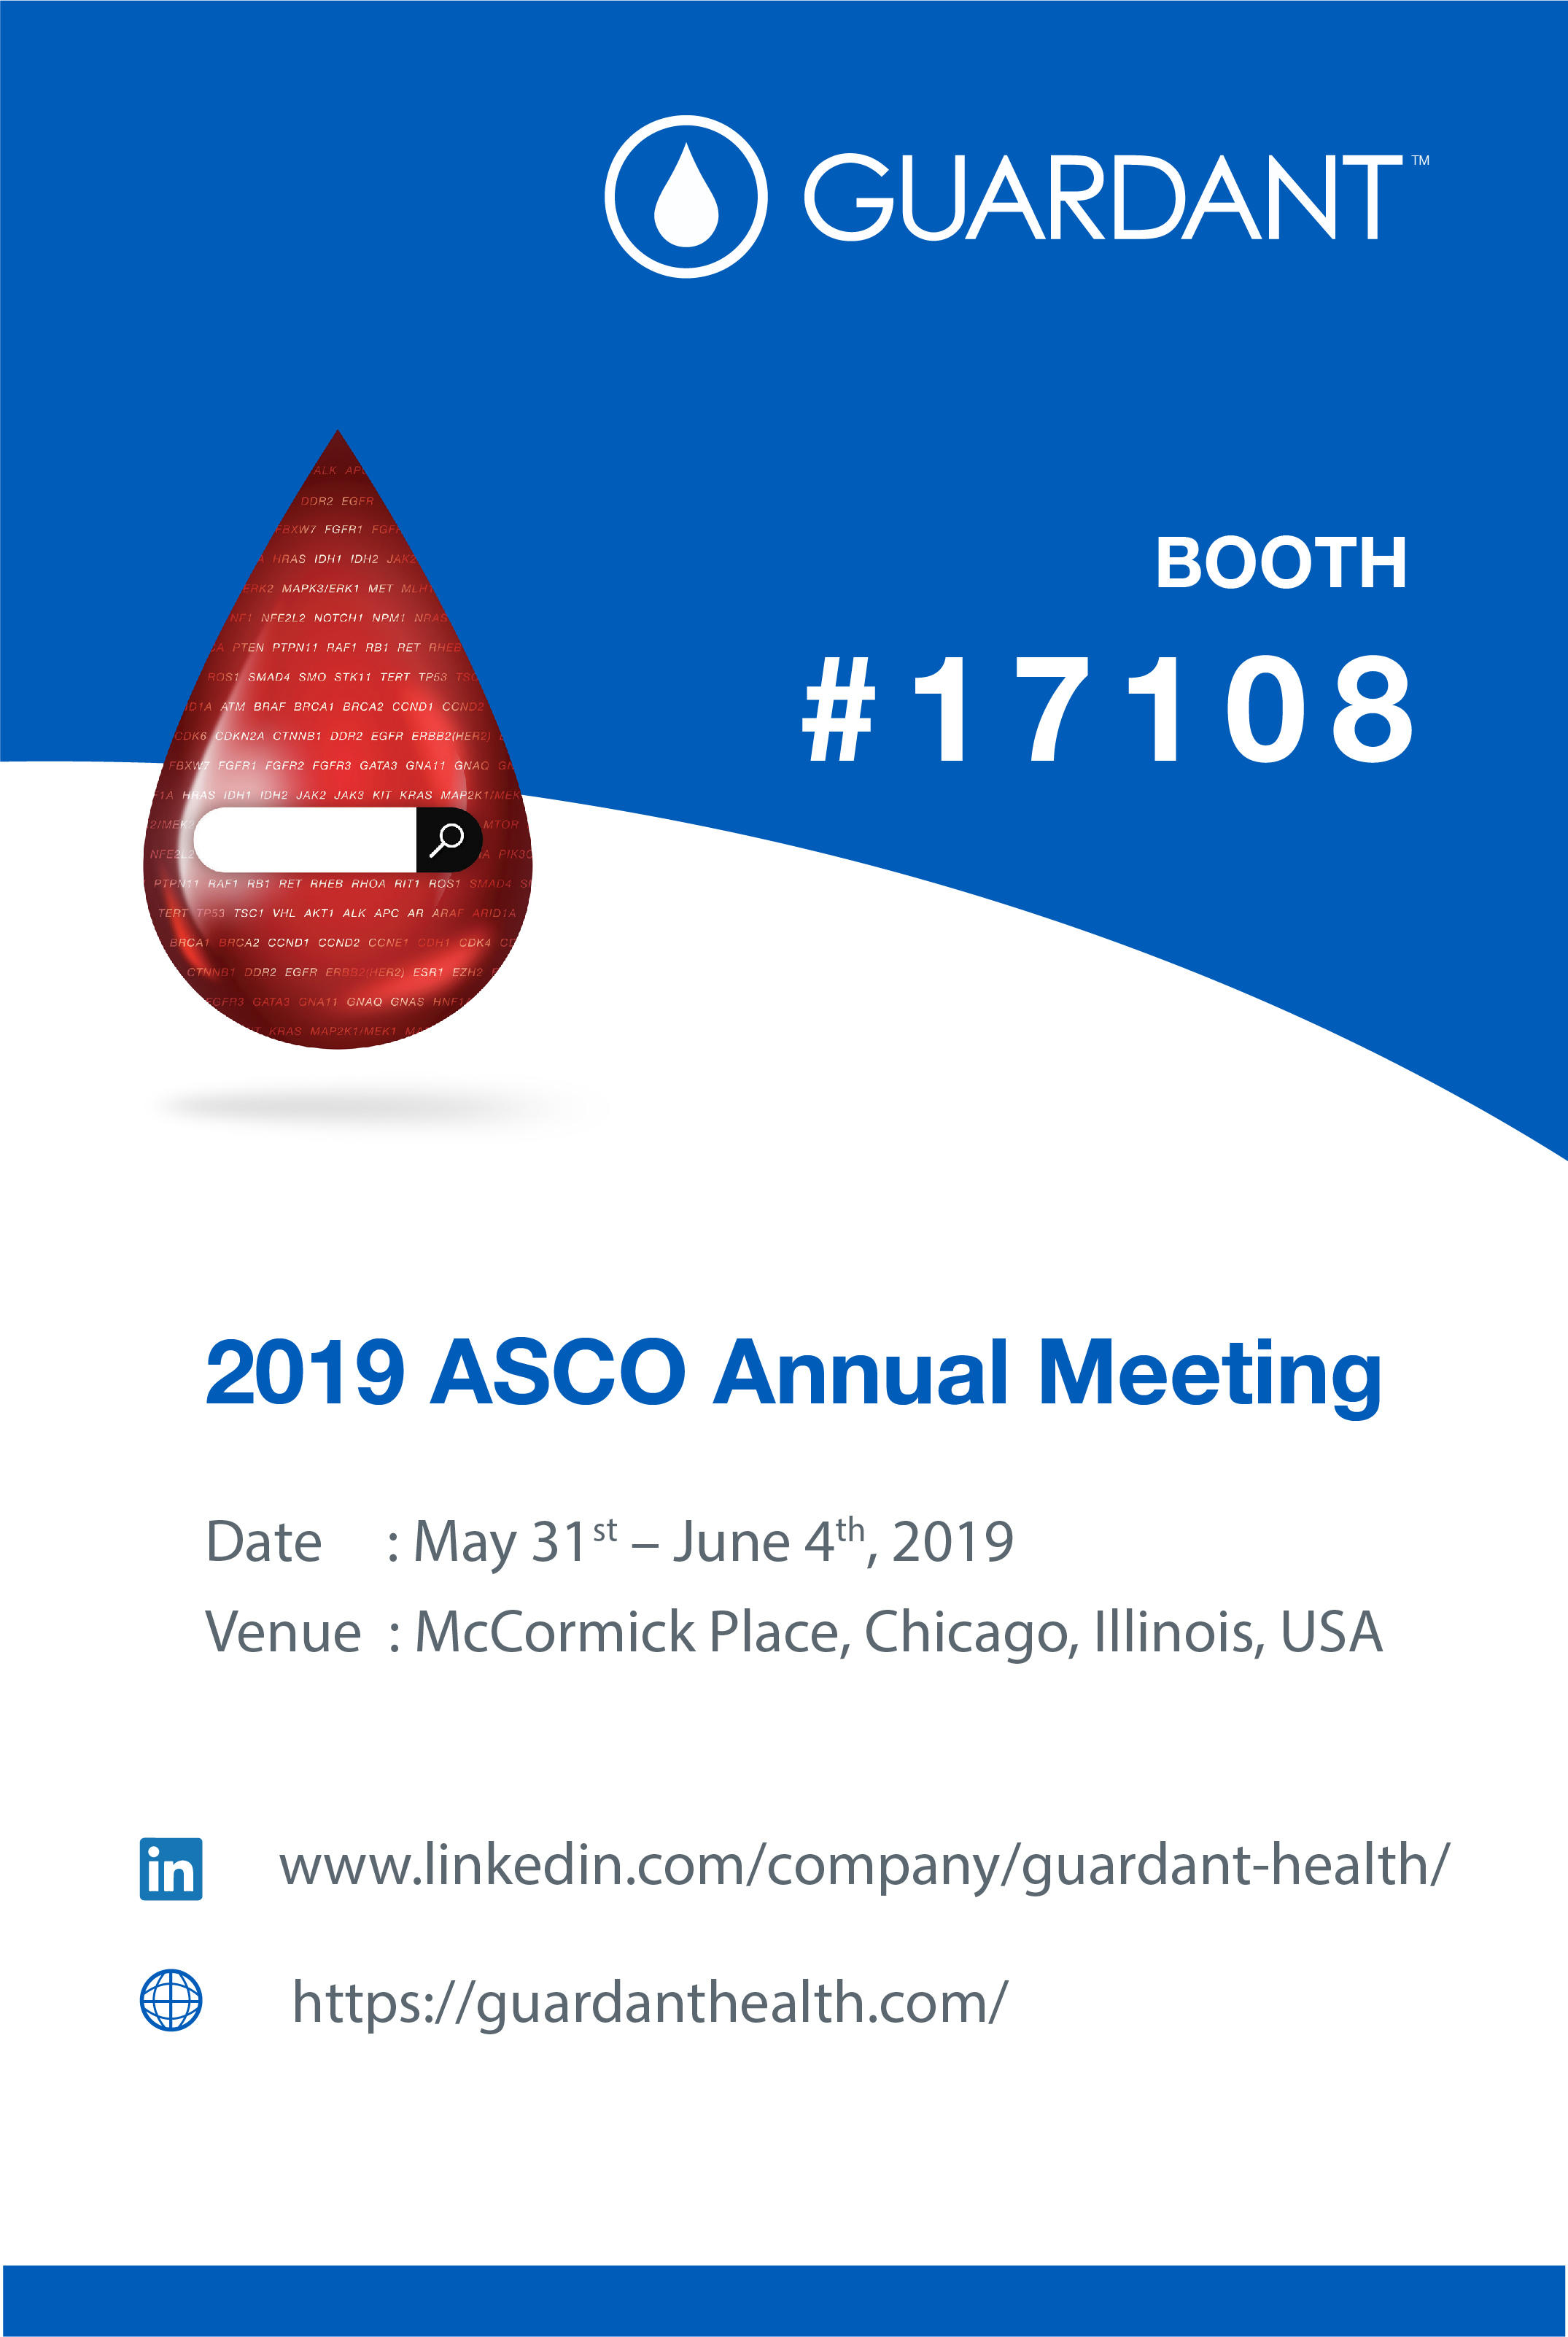 Guardant Health would be in #asco2019